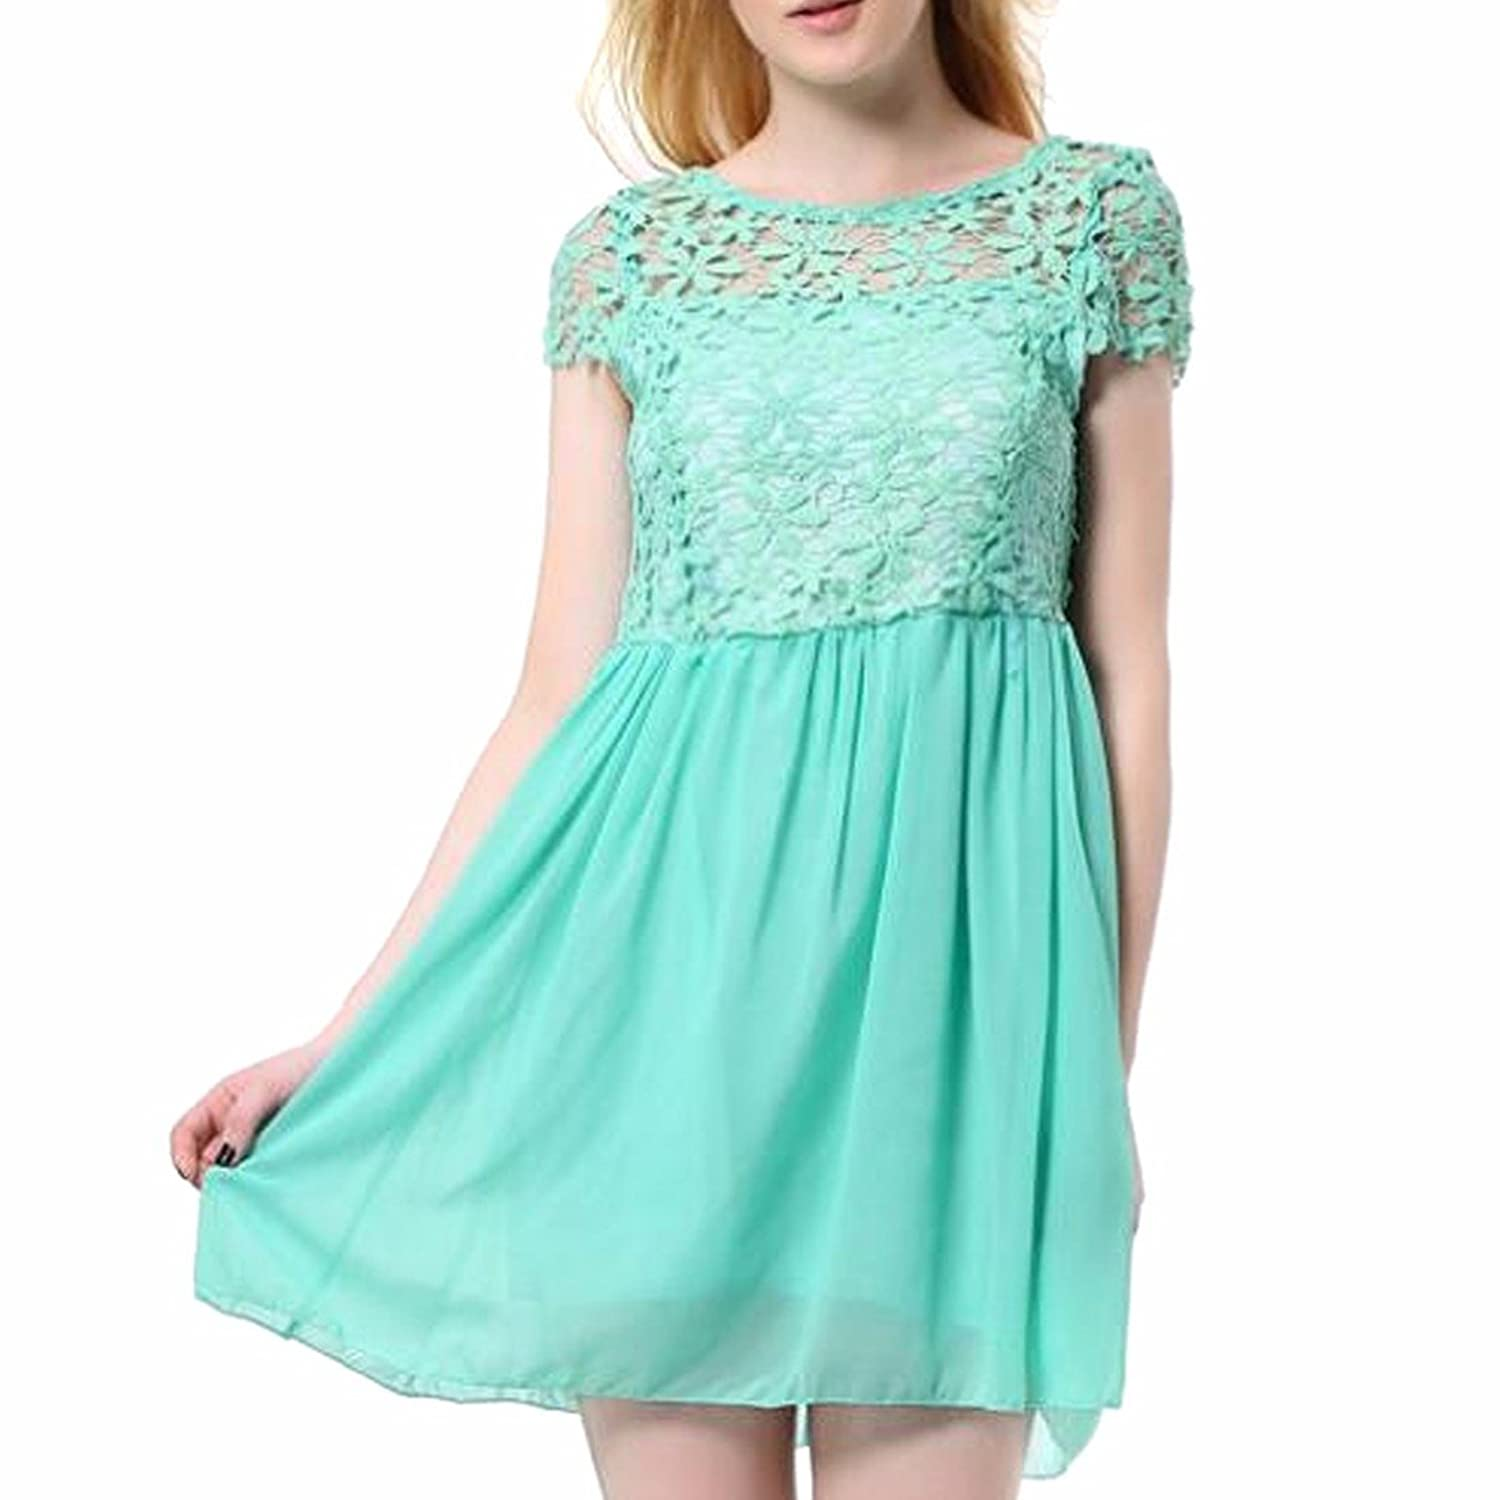 Women Girls Lace Floral Hollow Dress Short Sleeves Mini Dress 4 Colors Party